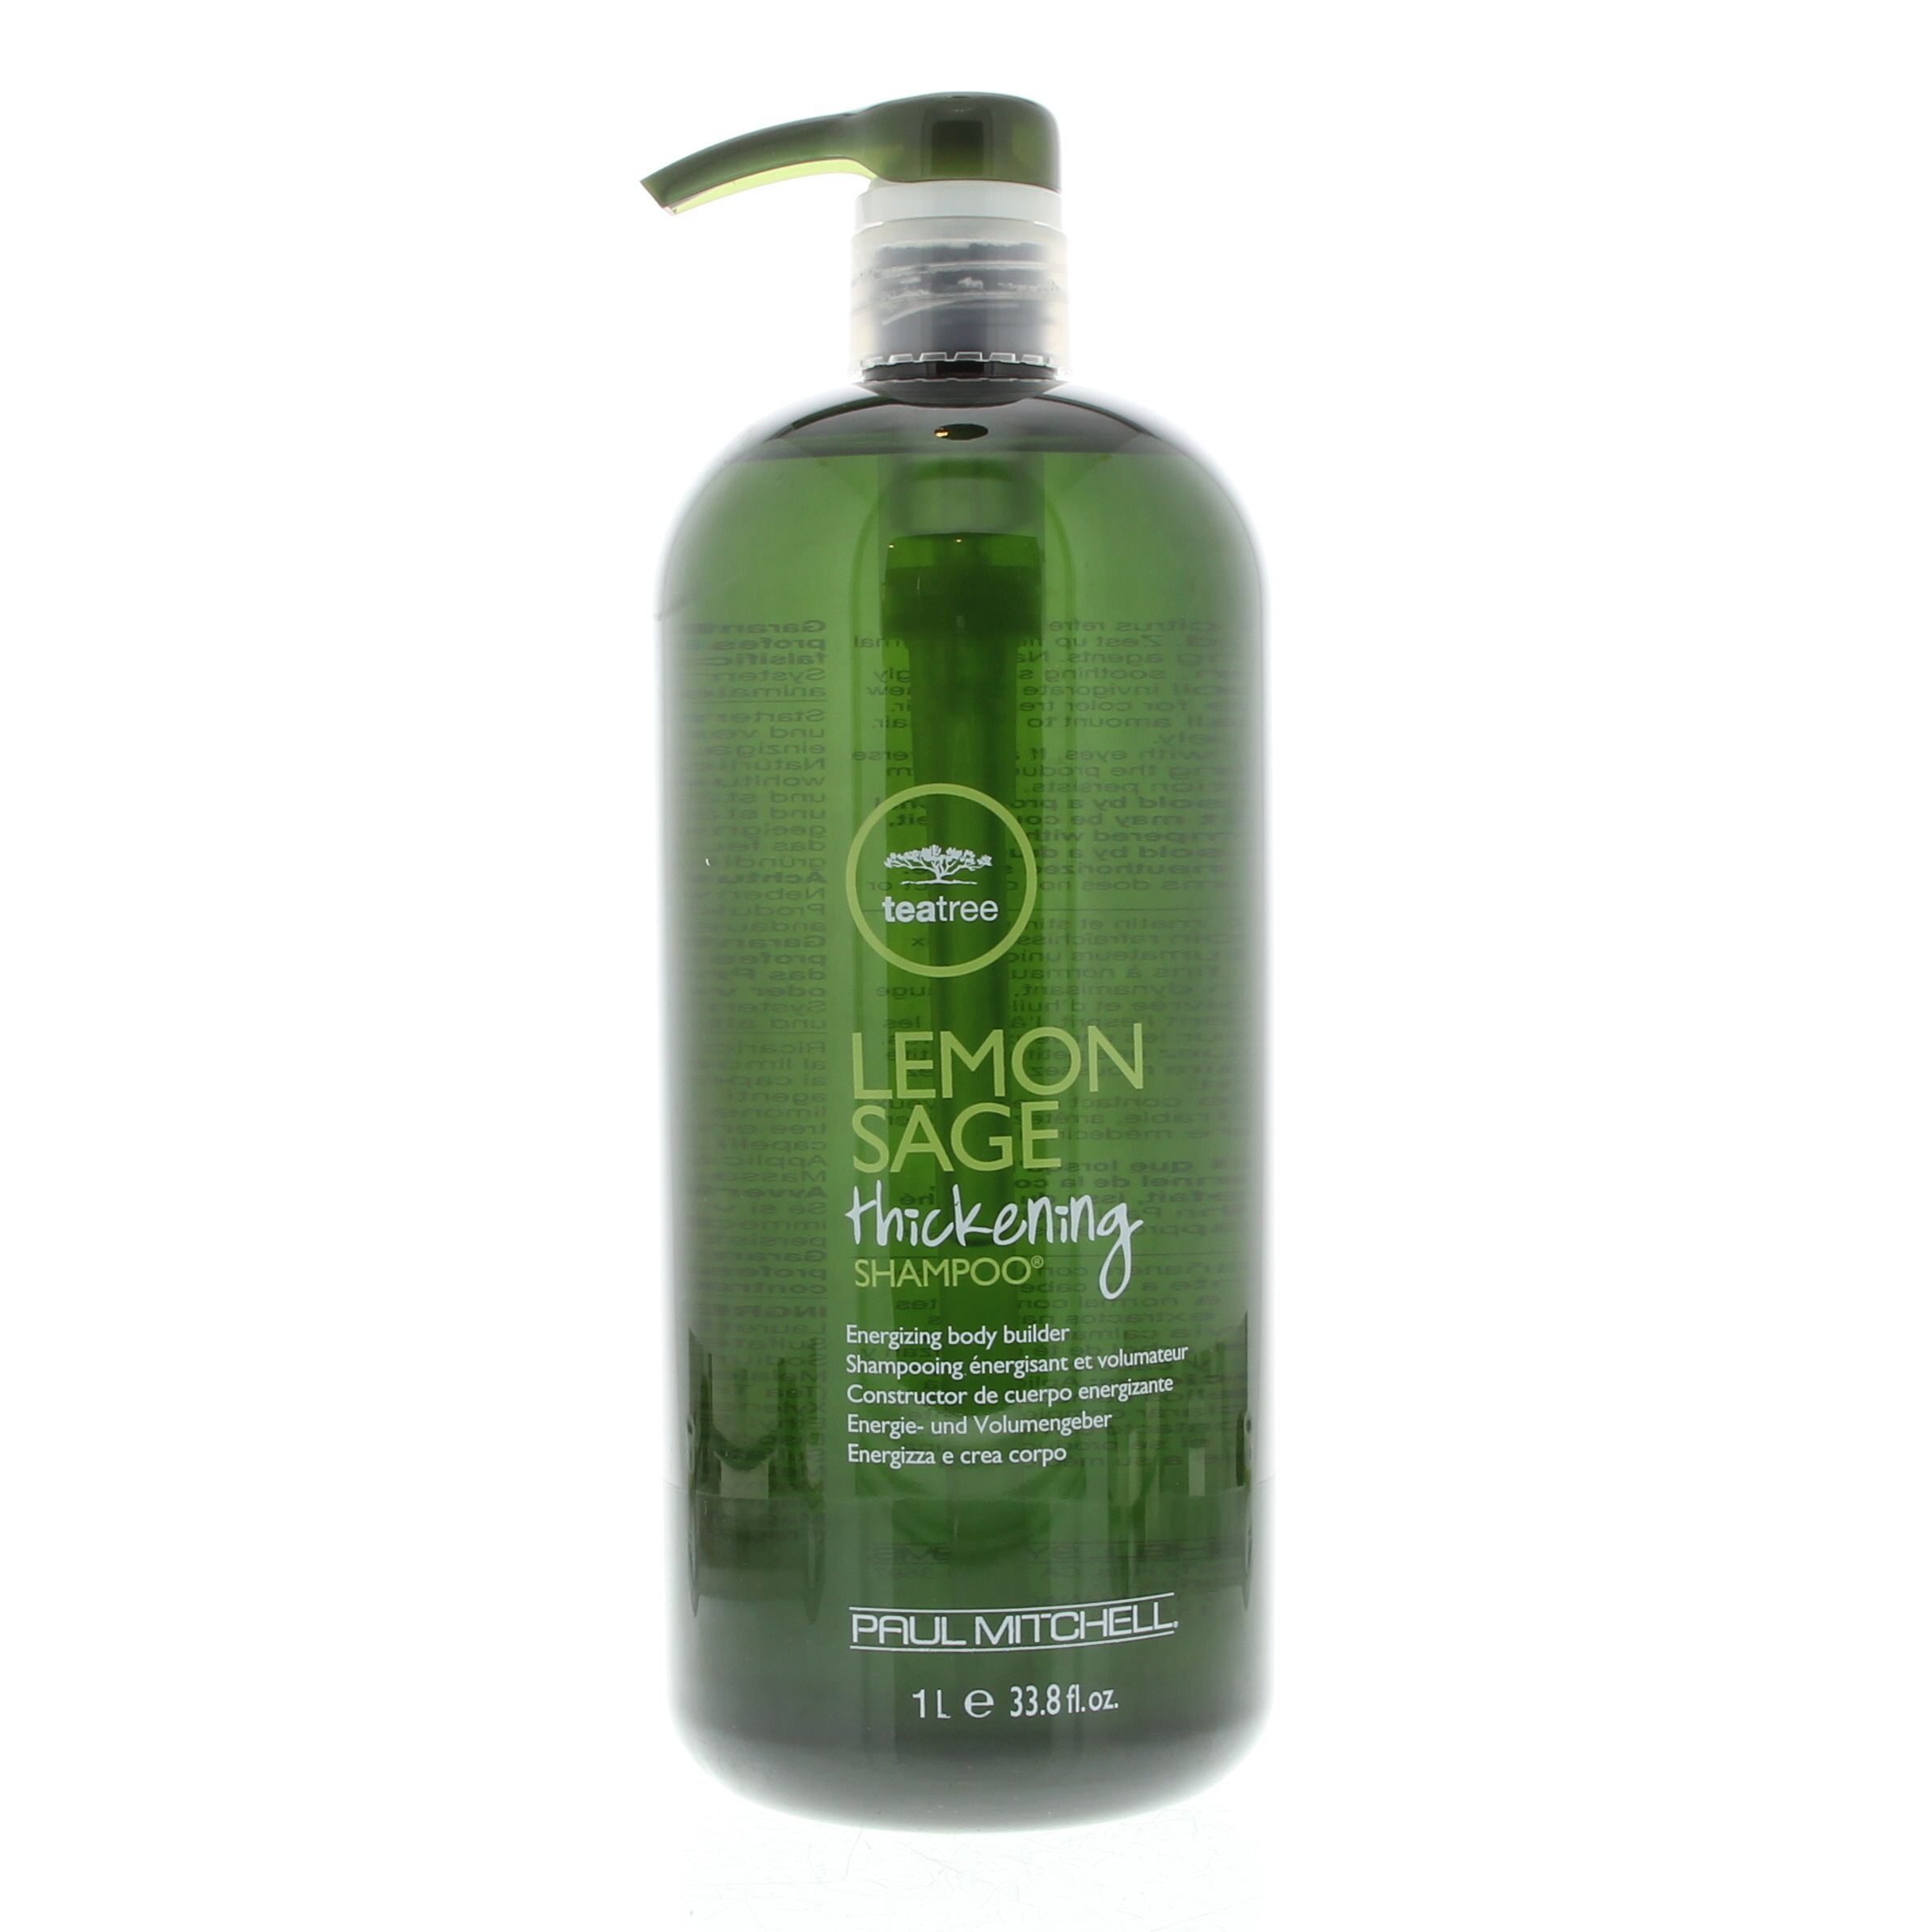 Paul Mitchell Tea Tree Lemon Sage Thickening Shampoo  Fijn Haar 1000ml